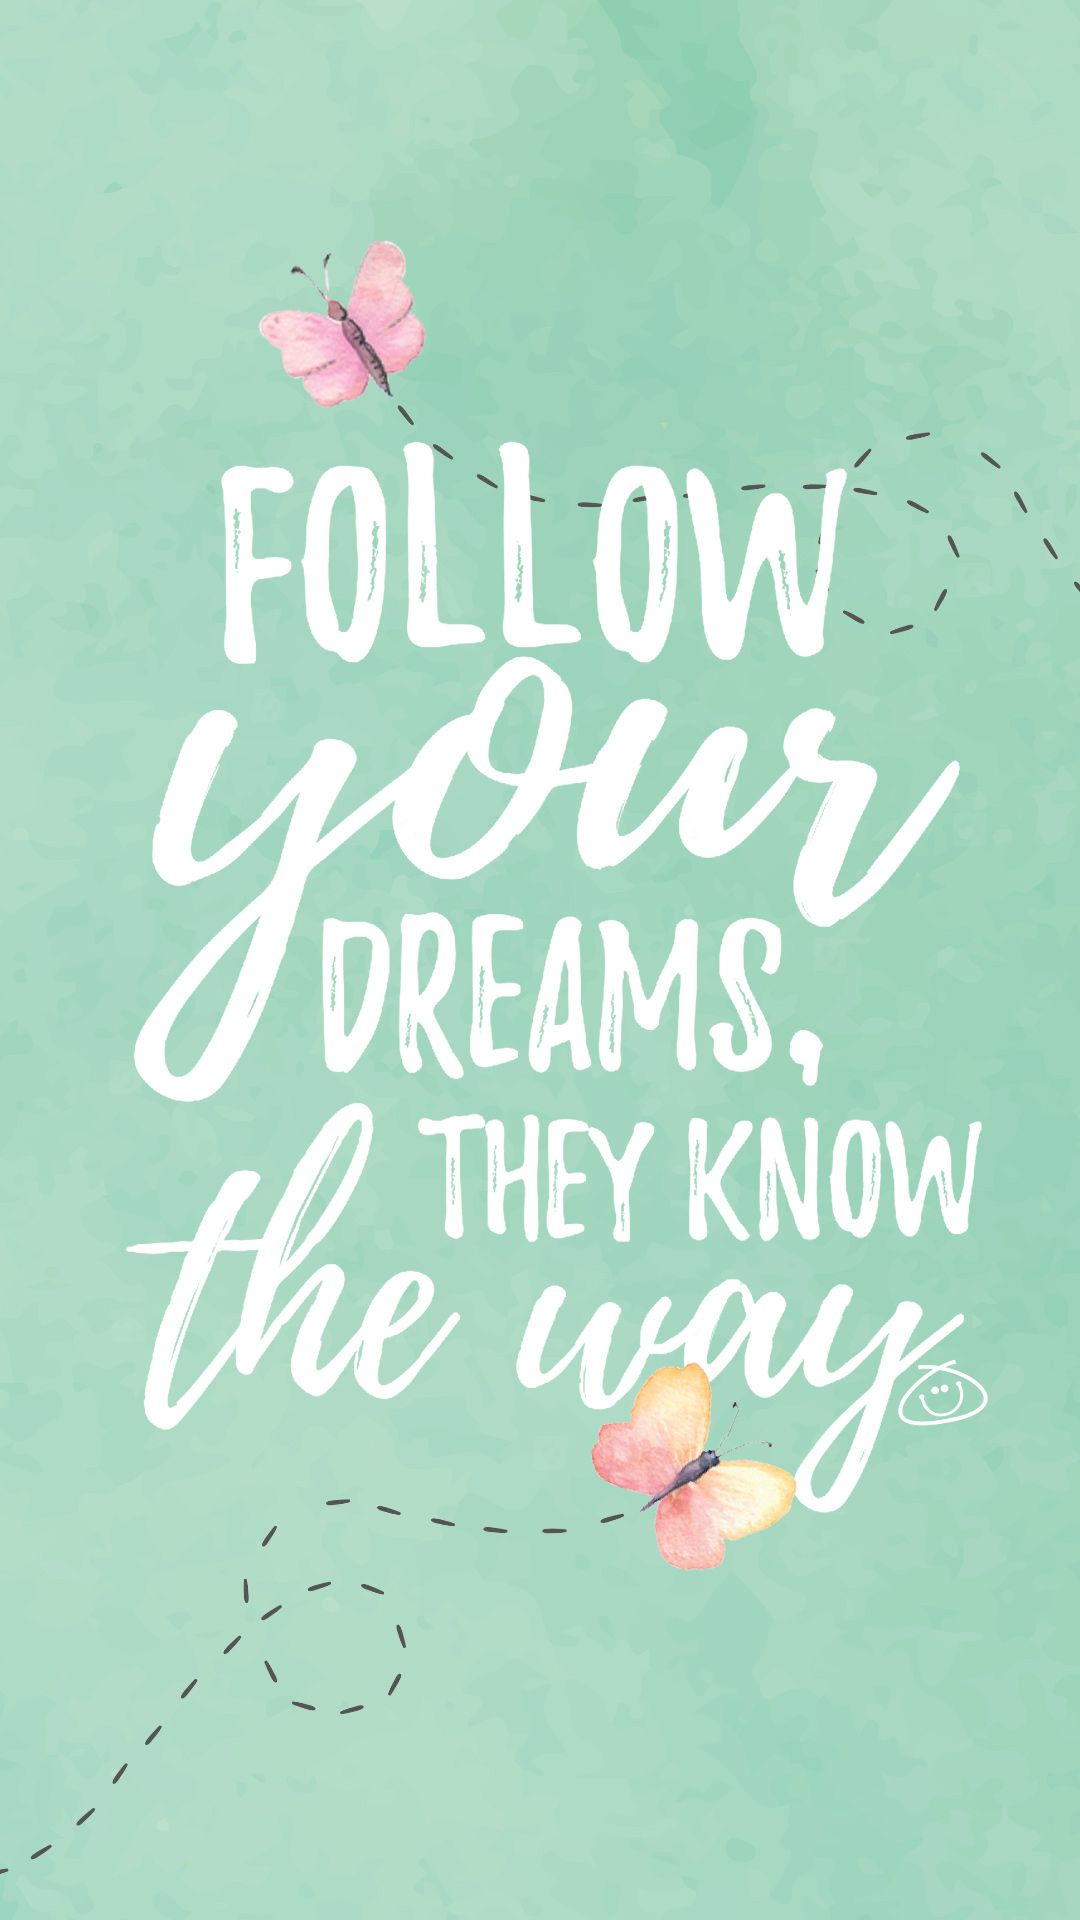 Free Colorful Smartphone Wallpaper - Follow your dreams, they know the way